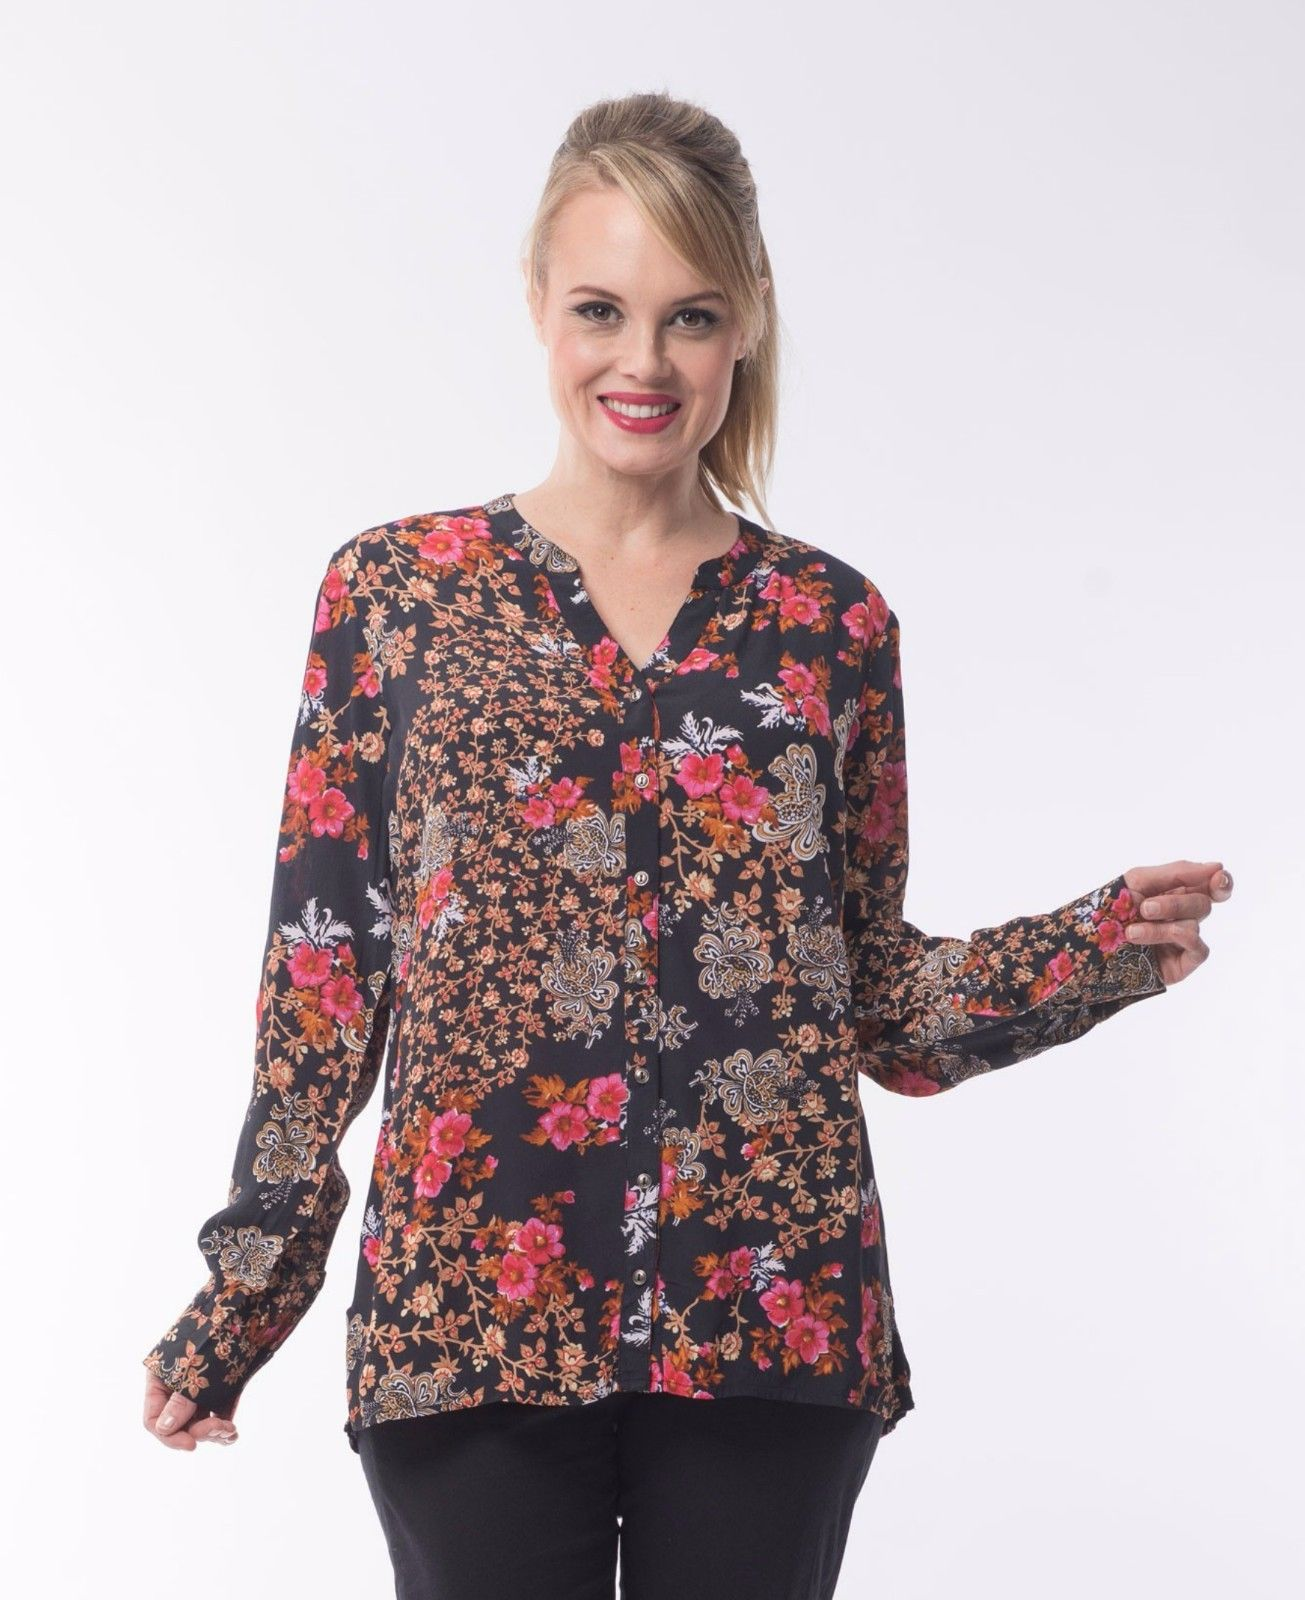 Boccini-Floral-Tunic-by-Orientique-Womens-Shirt-Blouse-Orange-Pink-Black-382026854545